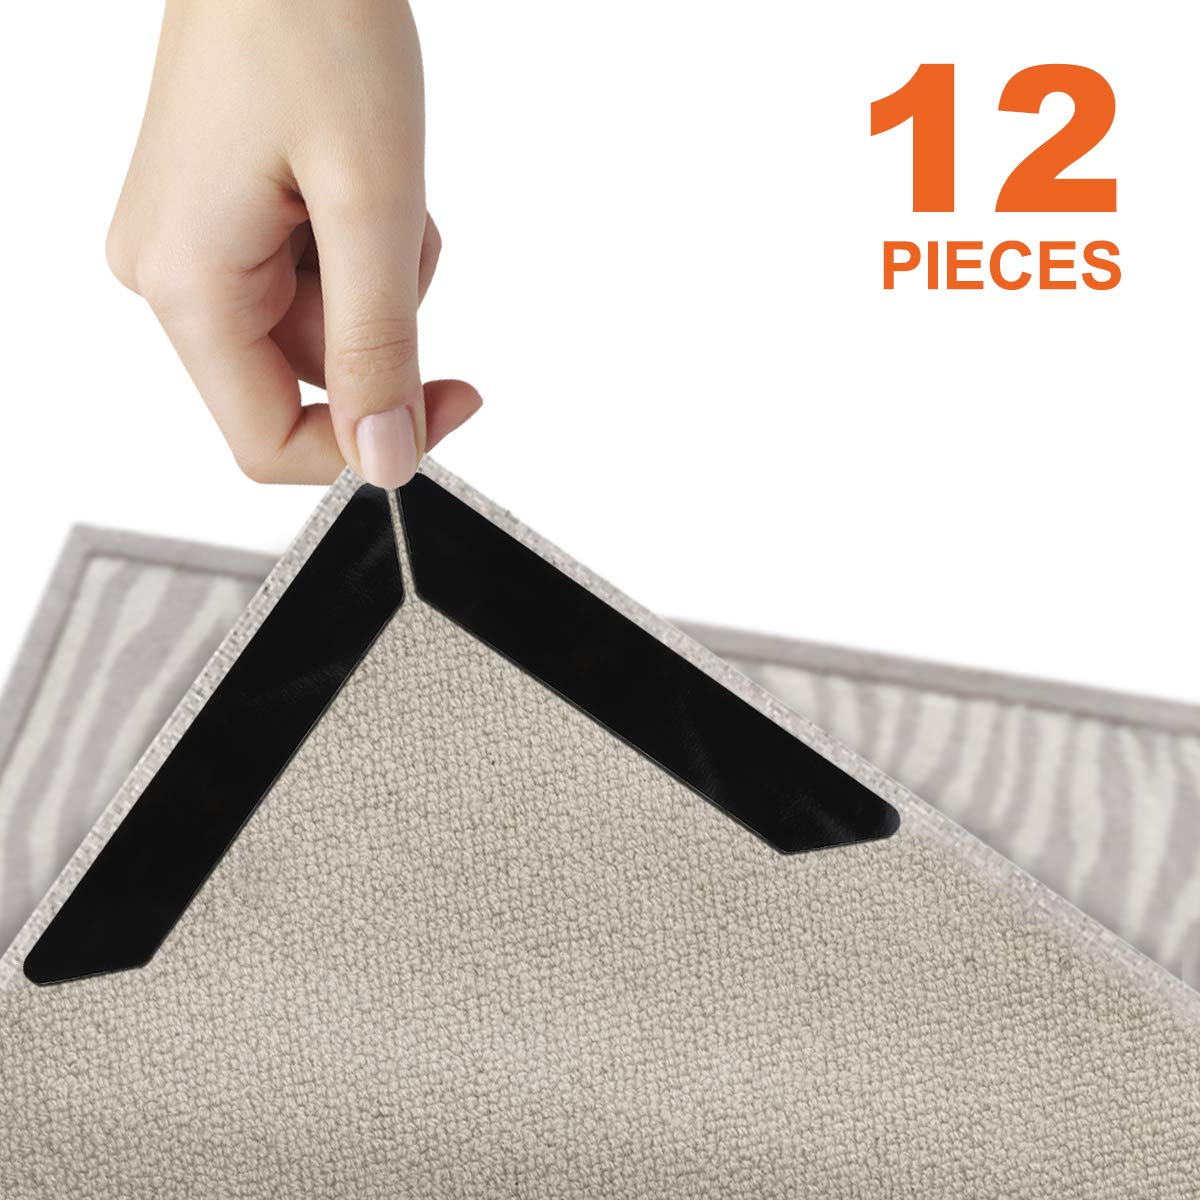 12 PCS Rug Grippers, Double Sided Carpet Tape No Slip Rug Pad Tape for Hardwood Floors Area Rugs Runners Rugs, Renewable,Anti Curling, Keep Corners and Edges Flat